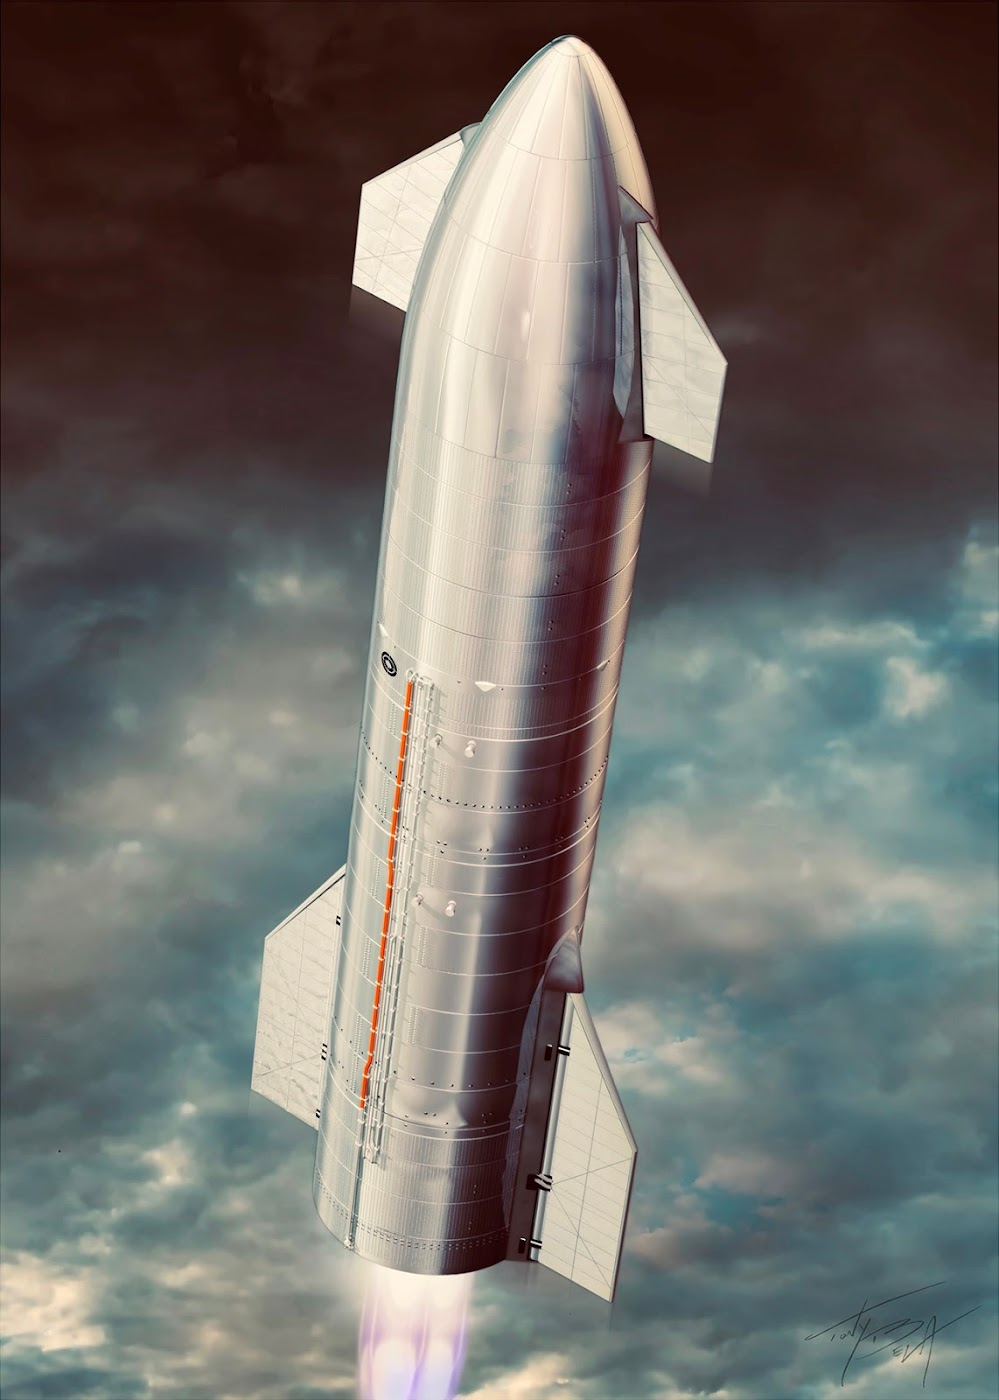 Poster of SpaceX's Starship SN8 launch by Tony Bela